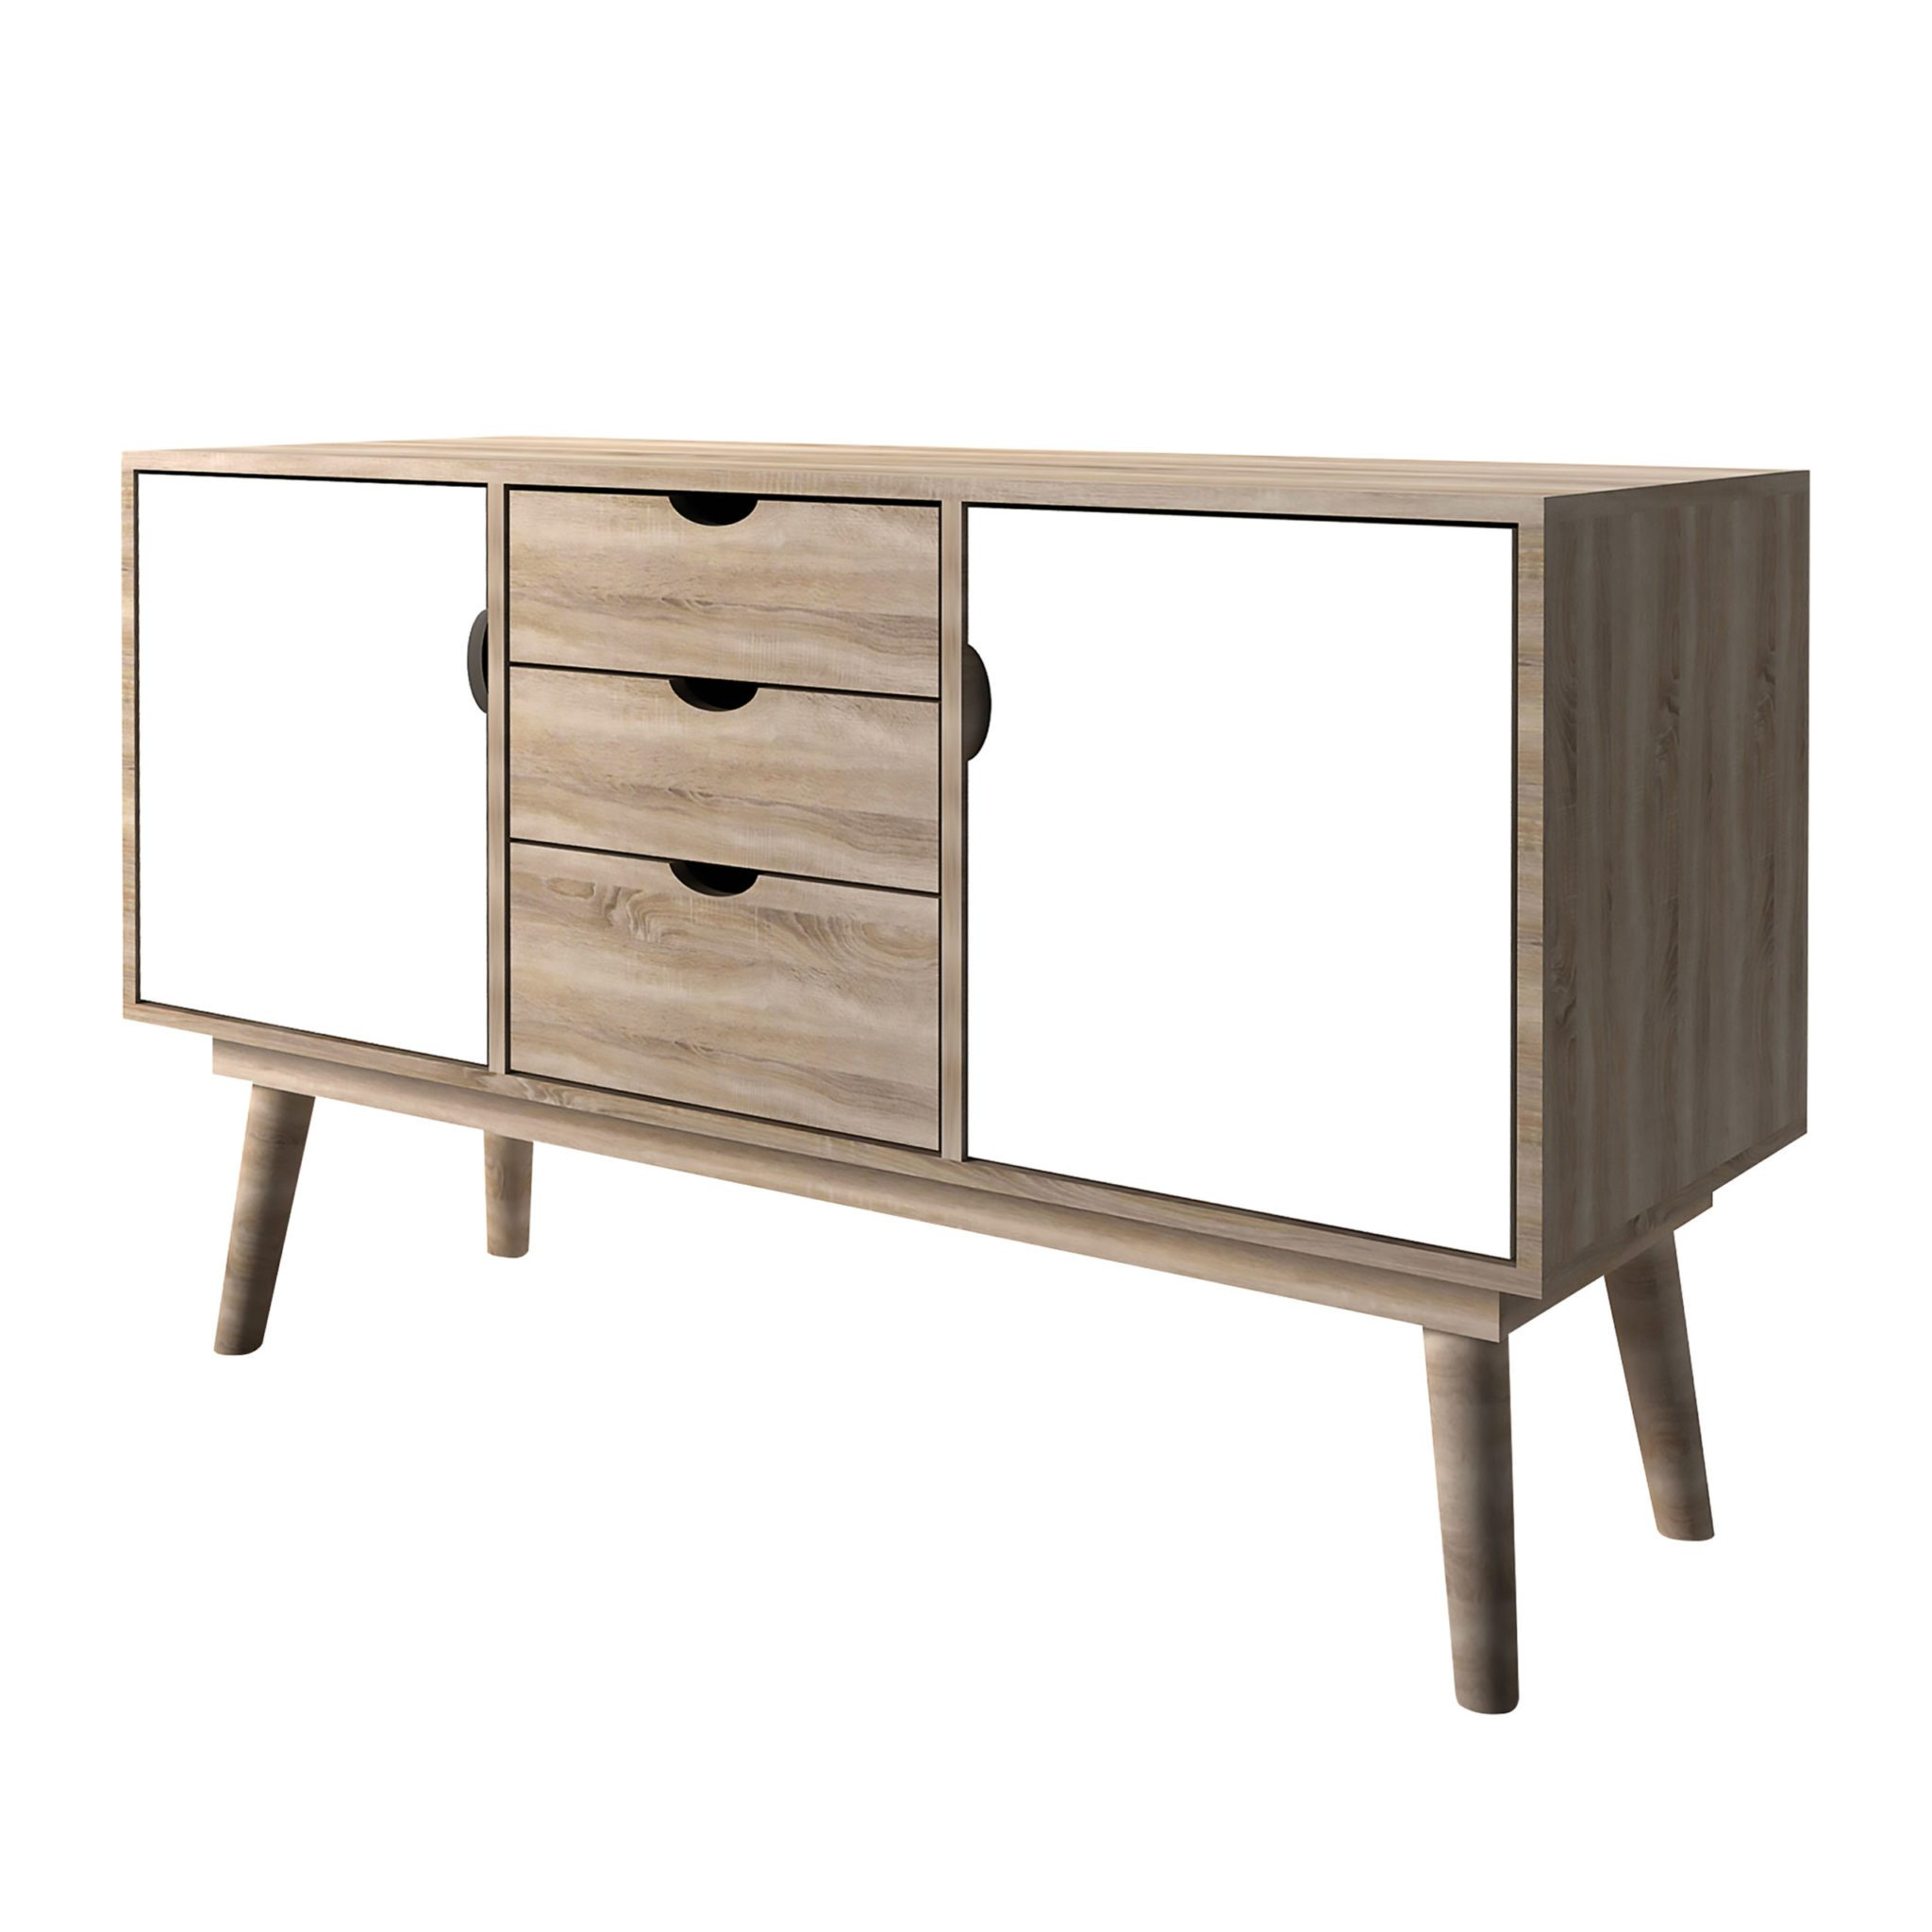 Secily Oak 2 Door Sideboard White